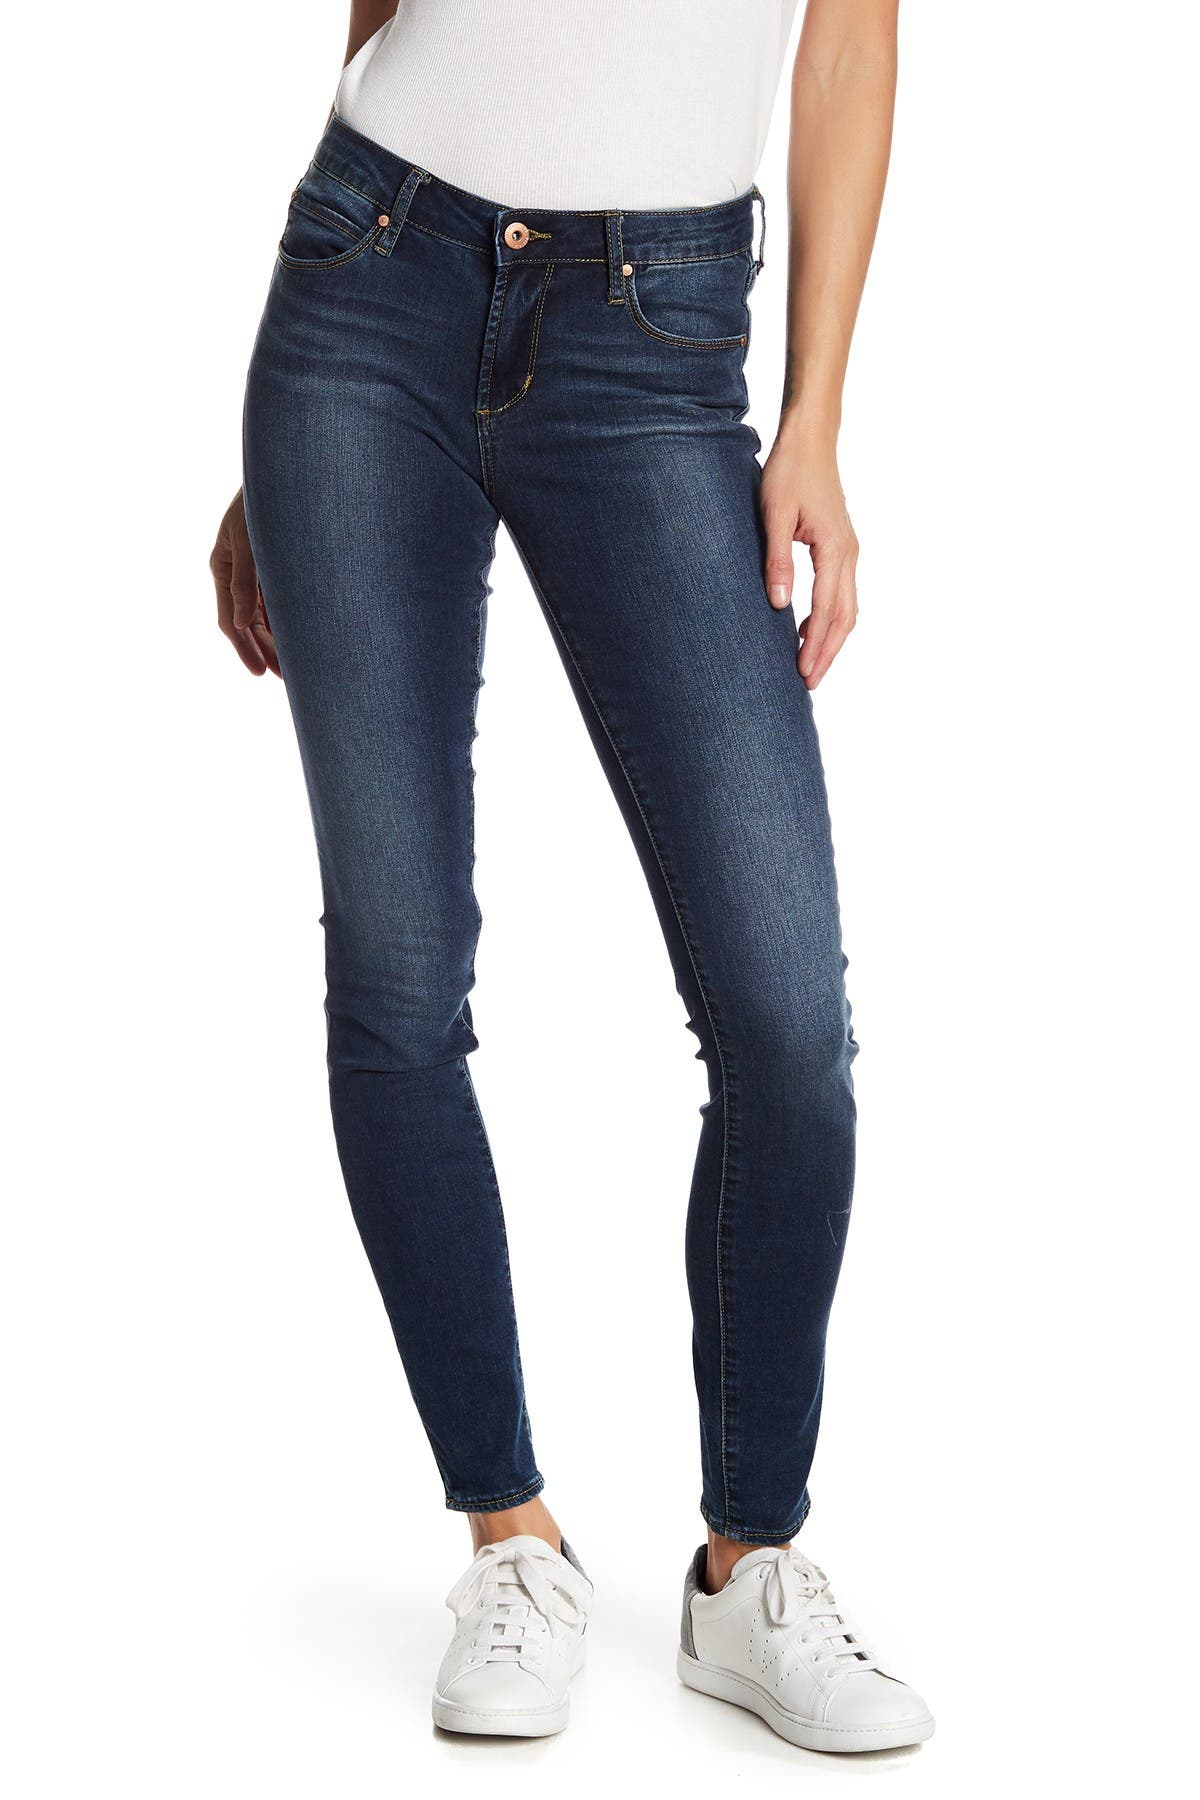 Image of Articles of Society 'Mya' Skinny Jeans